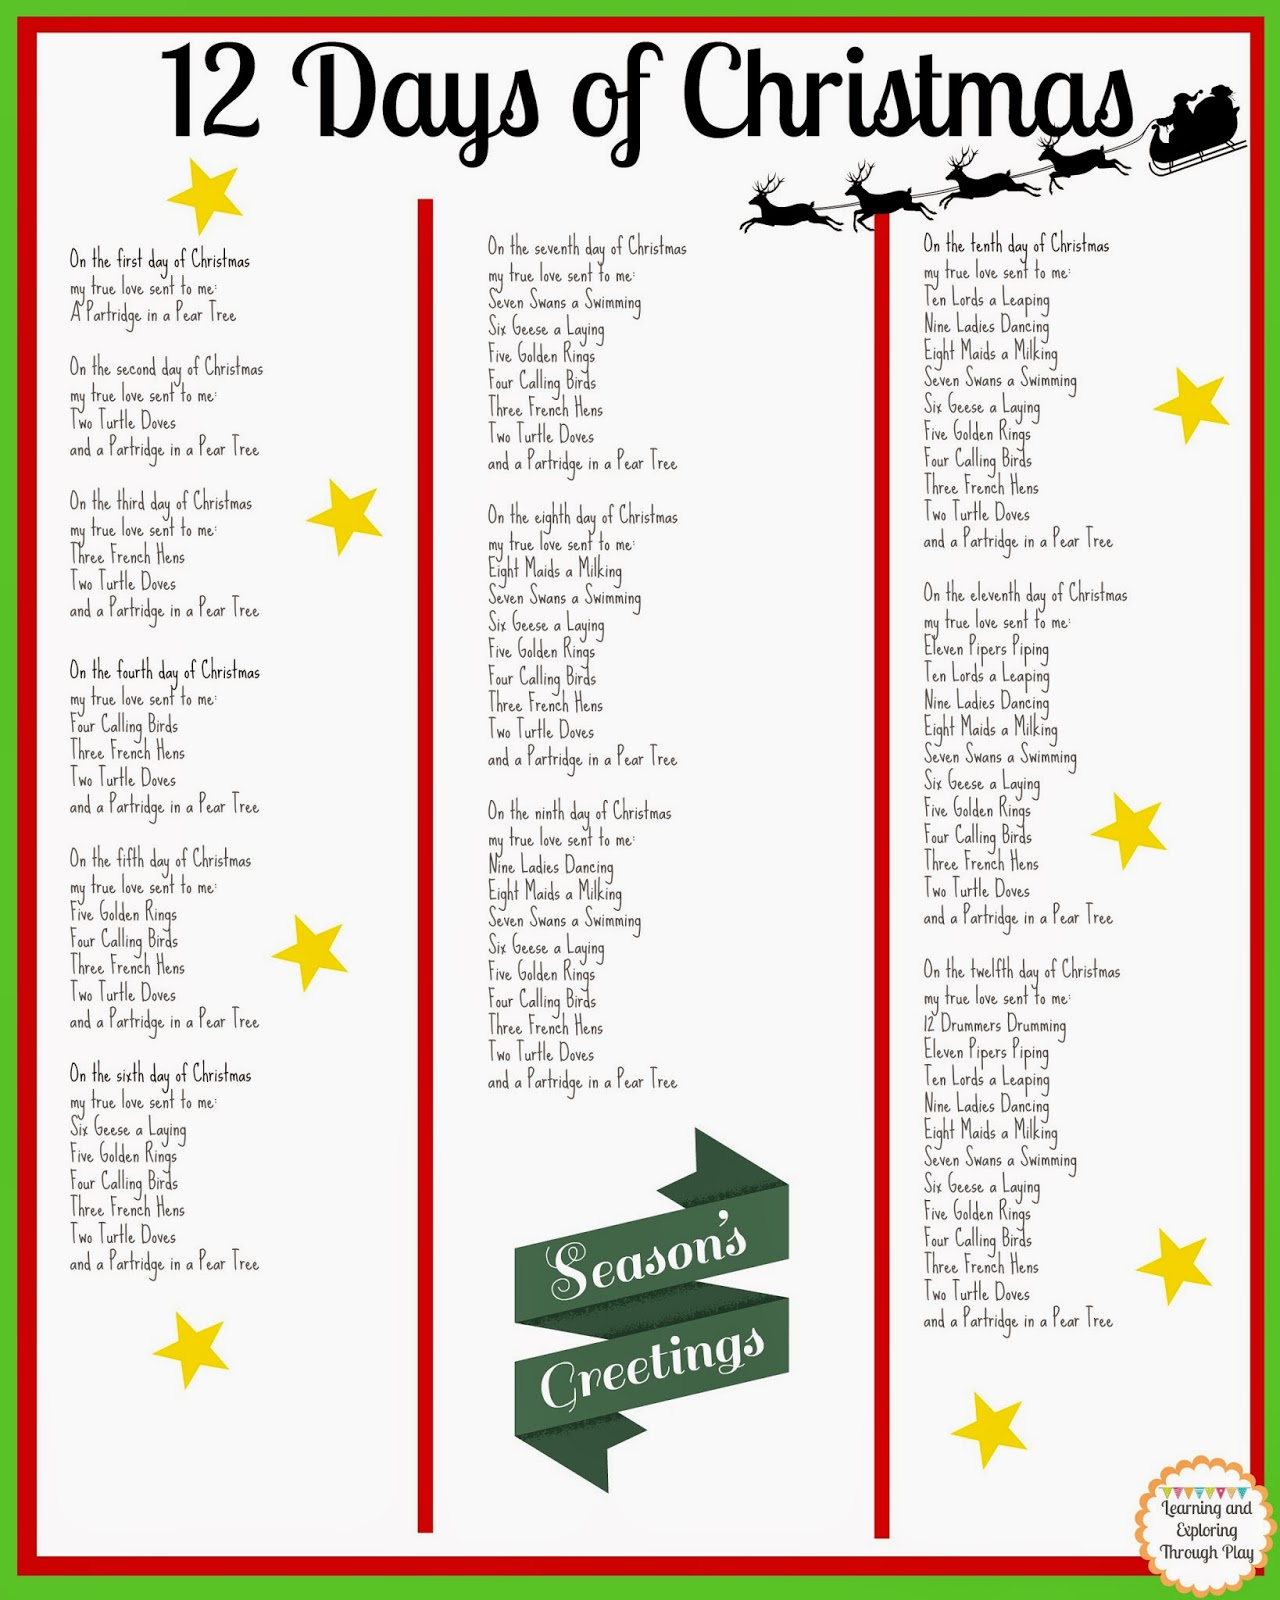 12 Days Of Christmas Lyrics.Gallery For Gt 12 Days Of Christmas Lyrics Printable